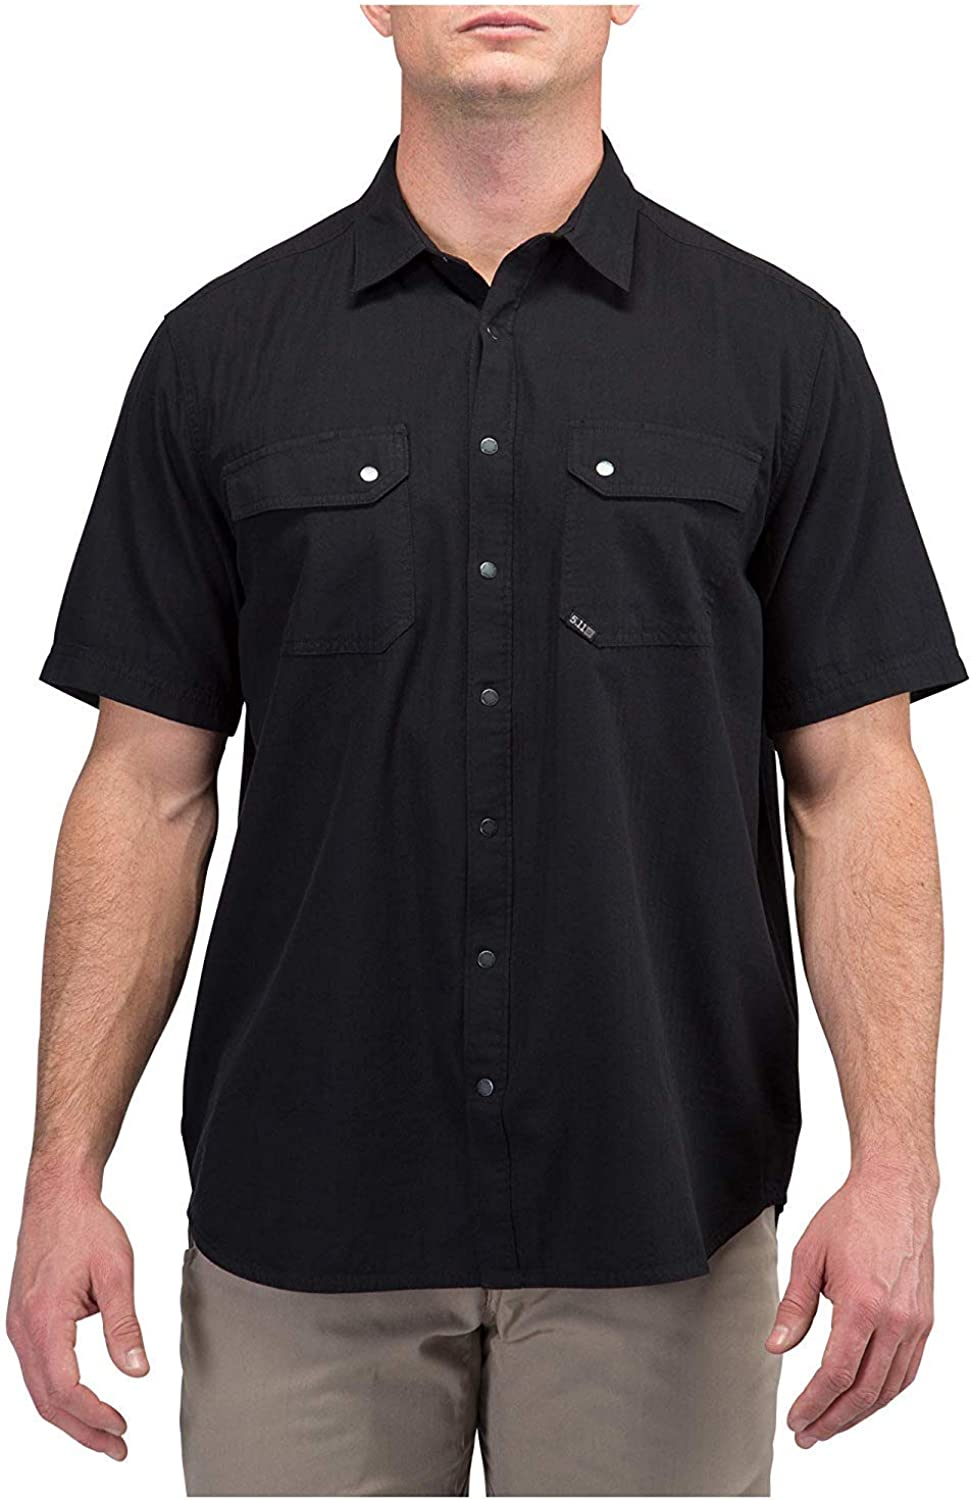 Style 71375 5.11 Tactical Mens Cotton Fabric Herringbone Short Sleeve Shirt